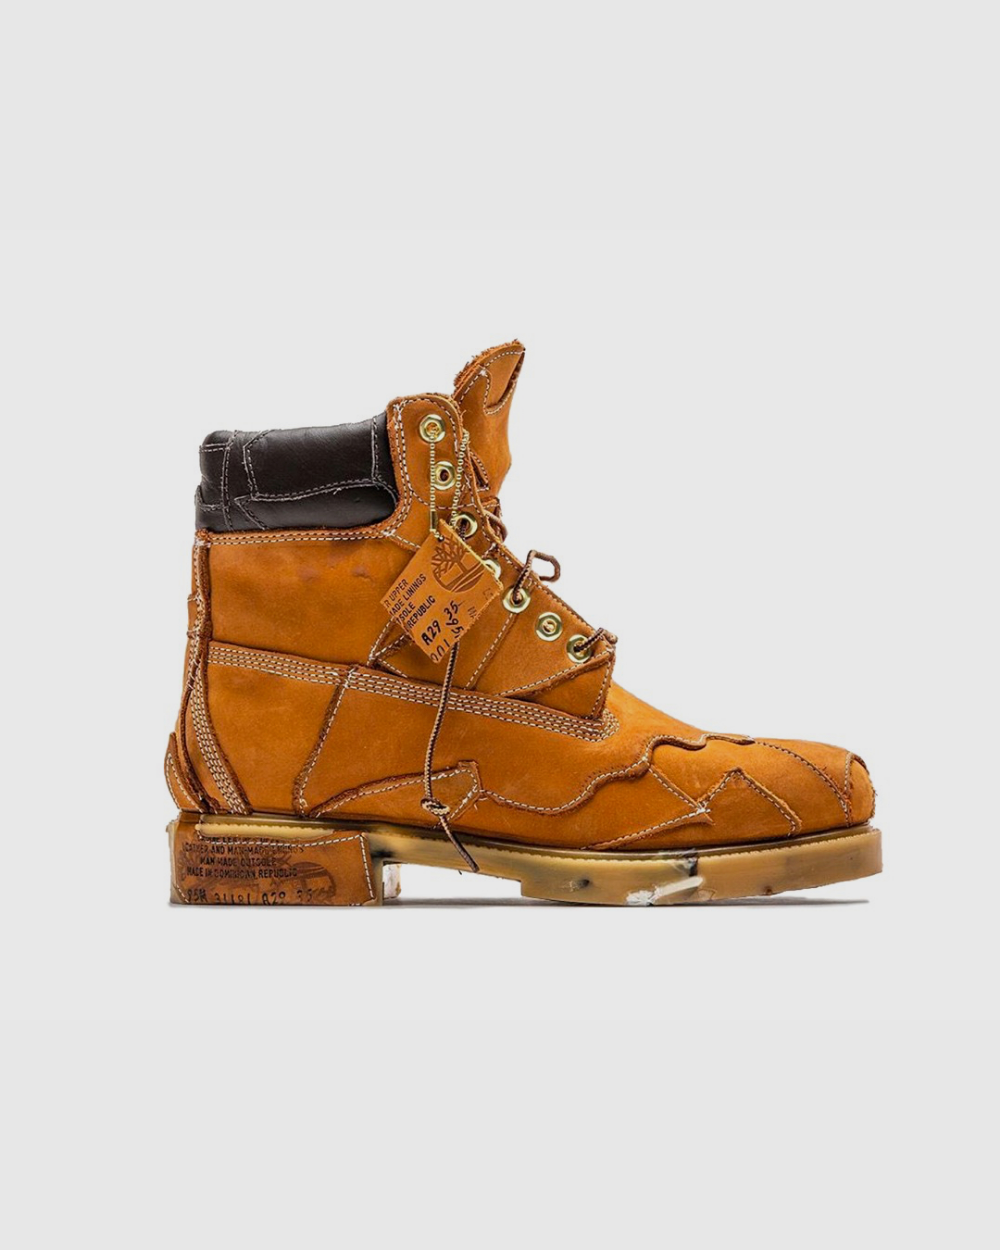 Pin By Metcha On Apparel Boots Timberland Timberland Boots